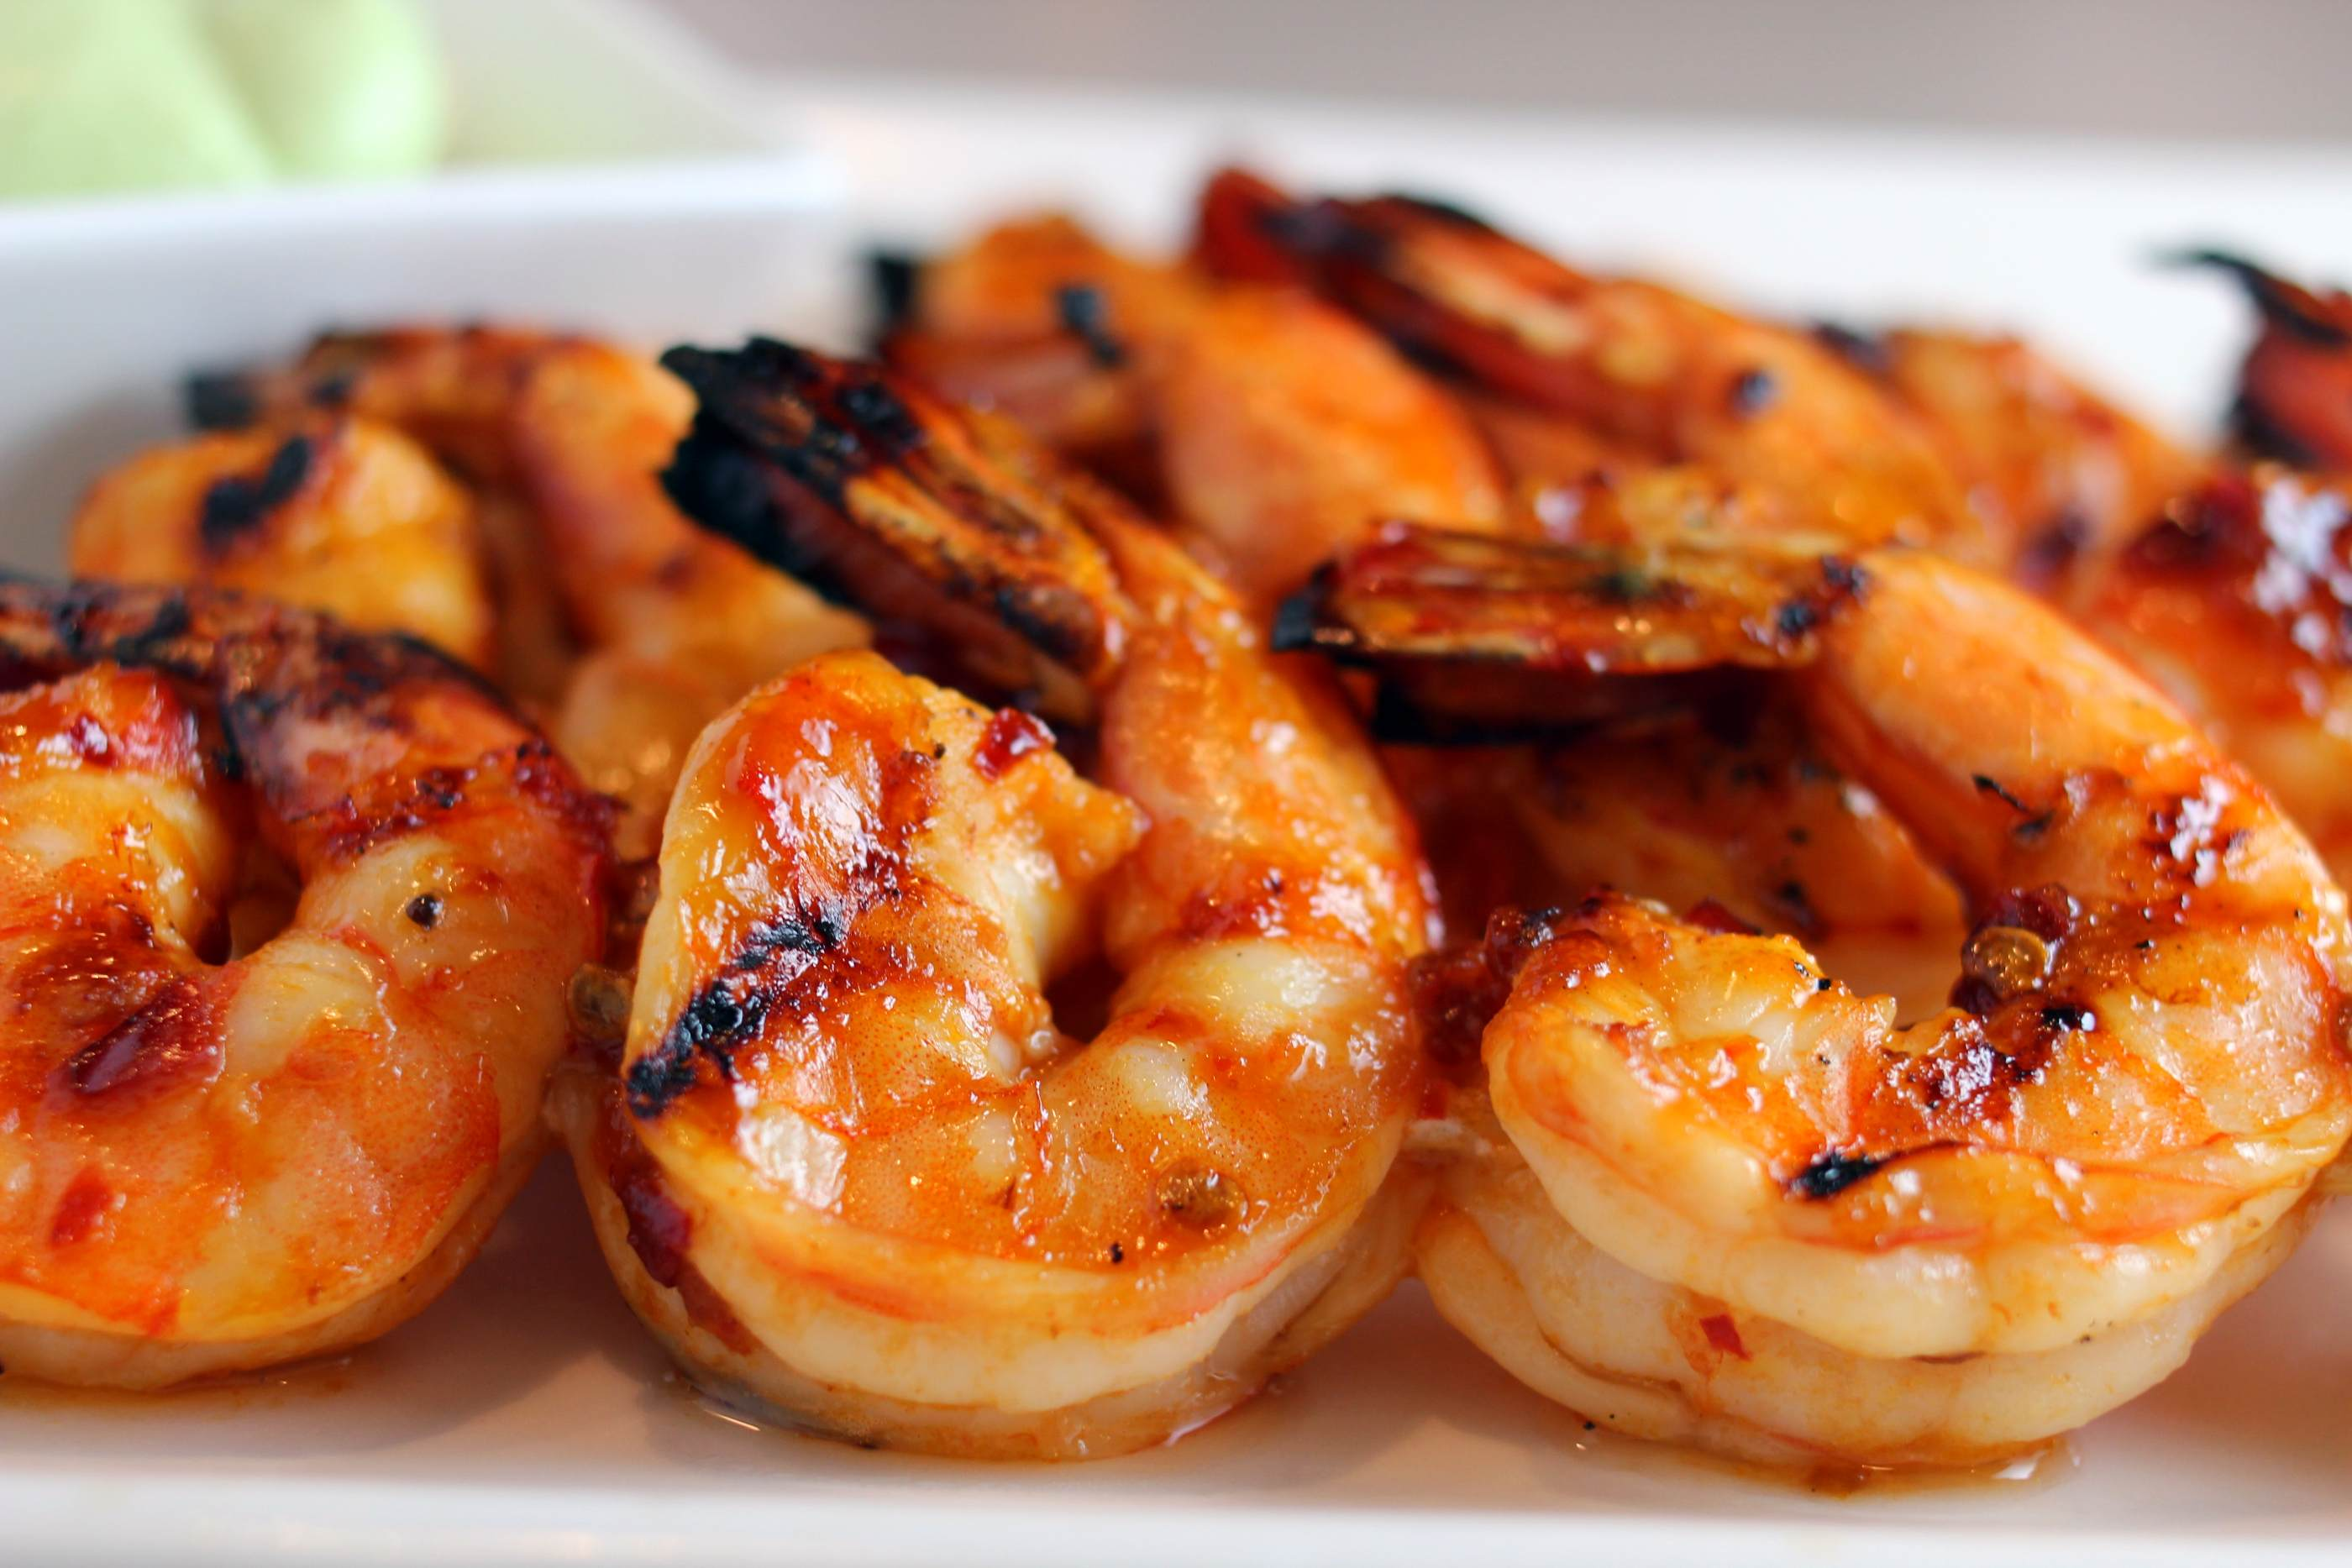 Spicy Grilled Shrimp Recipe Honey chipotle grilled shrimp